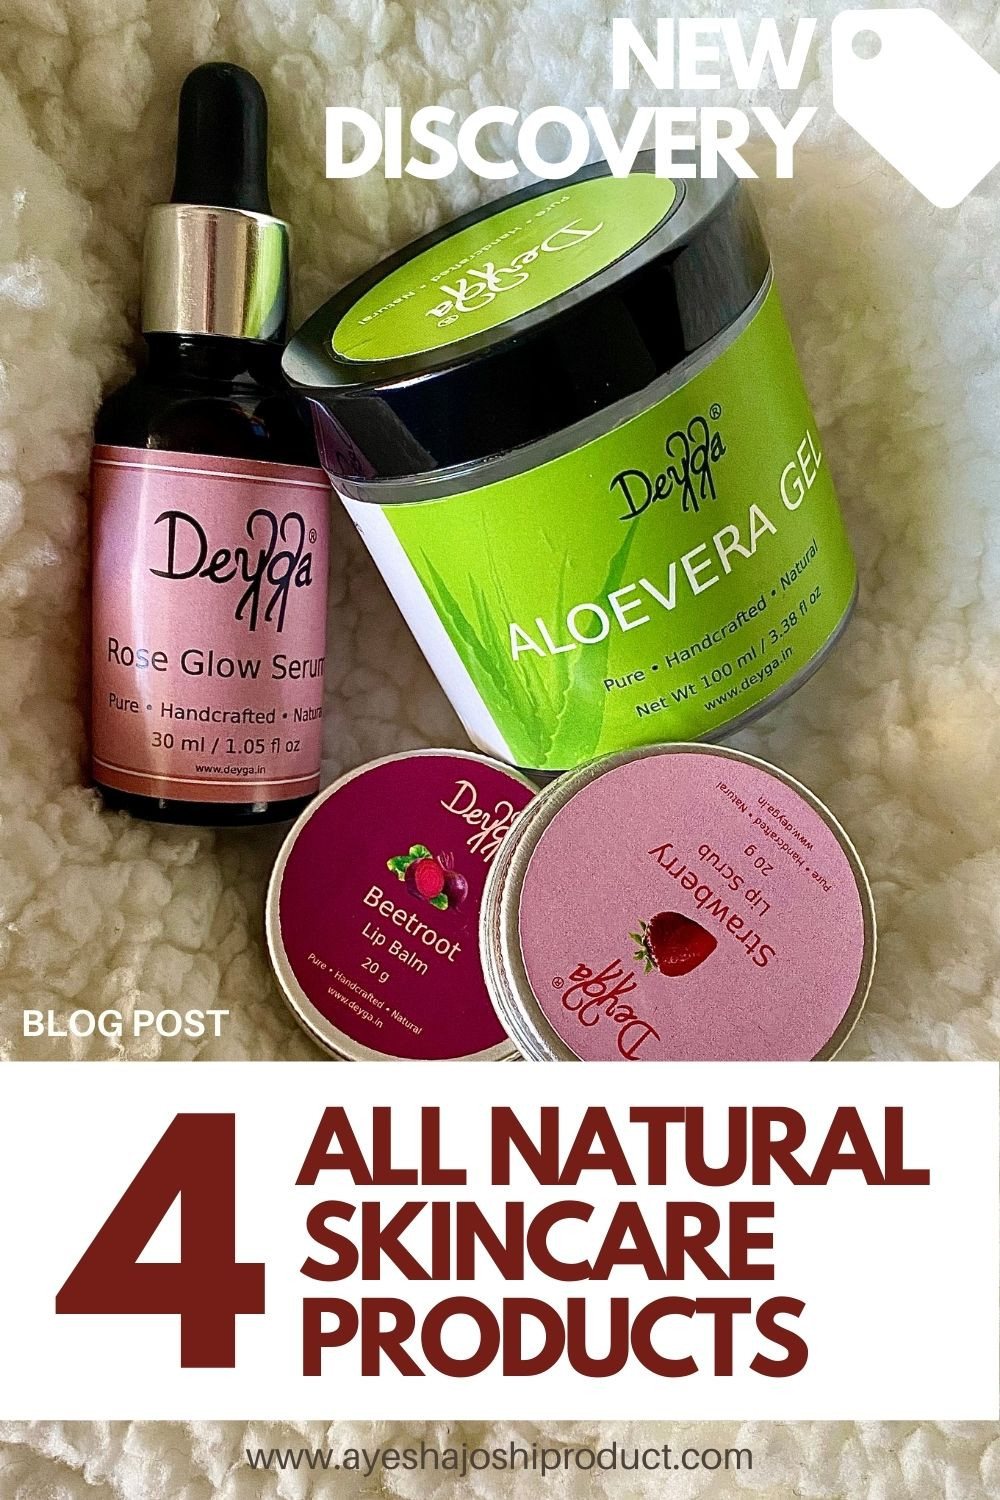 Deyga Organics _ An Ayesha Joshi Product Review